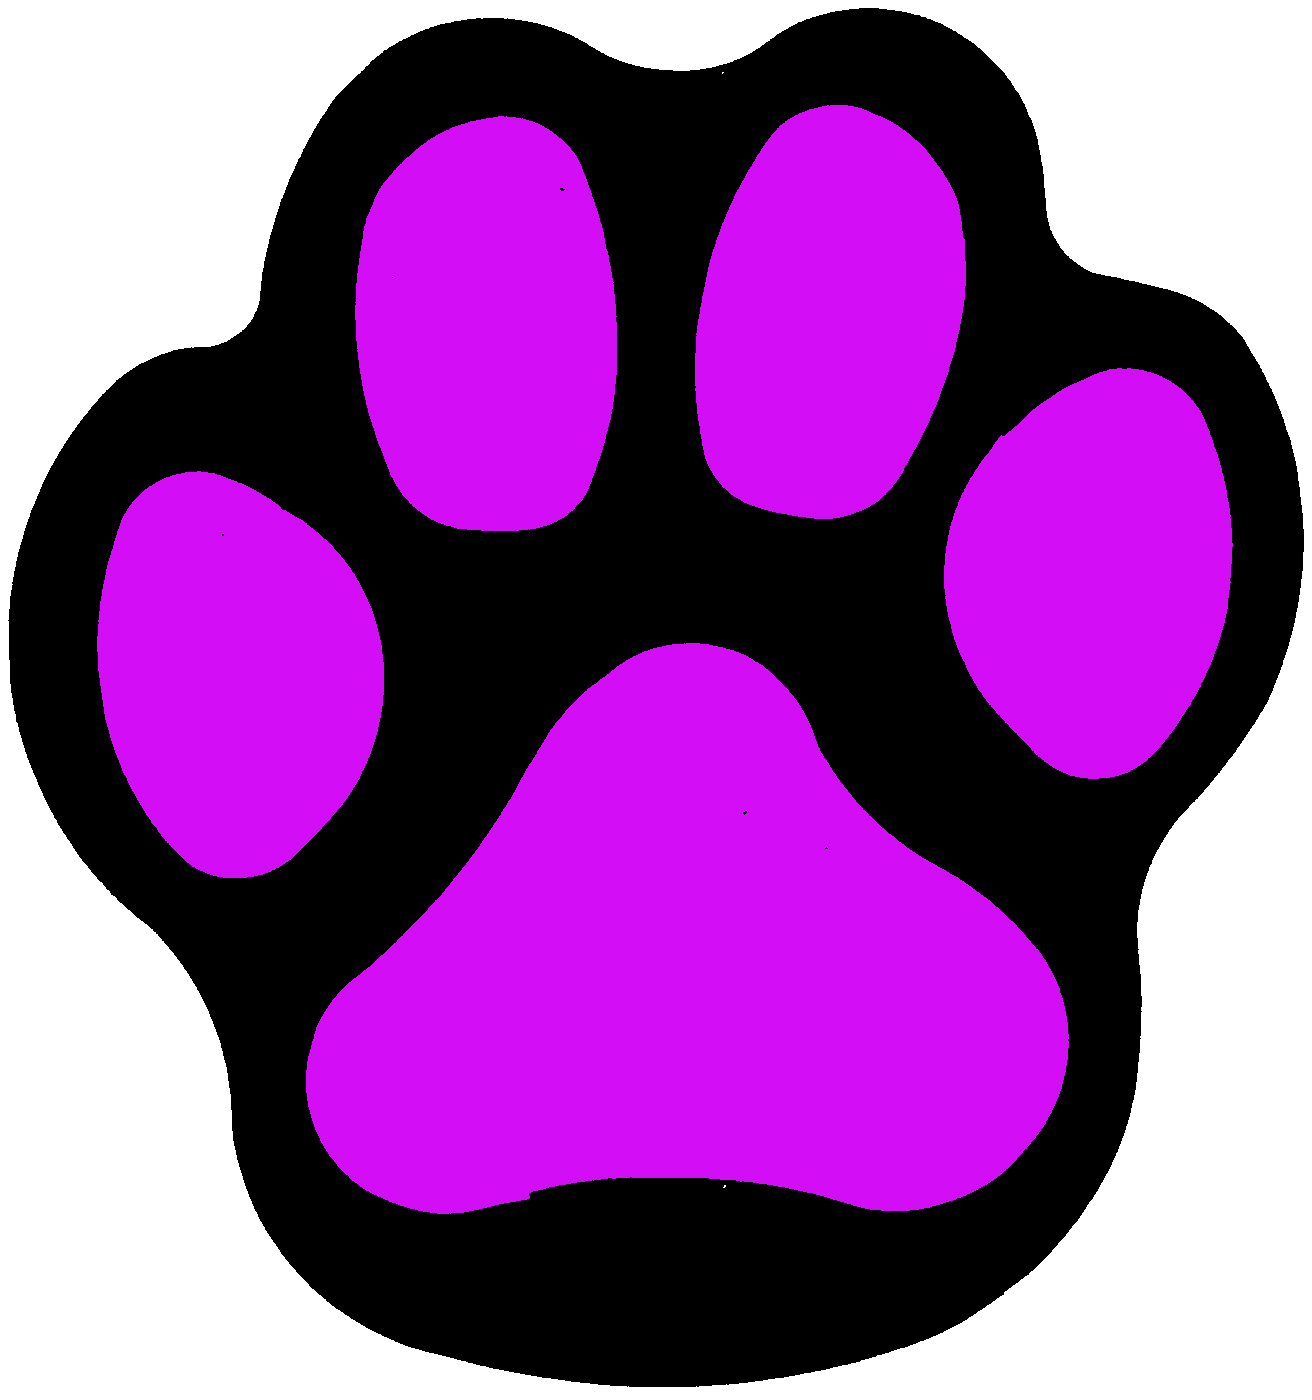 Wildcat clipart panther paw Print paw Etsy paw Purple